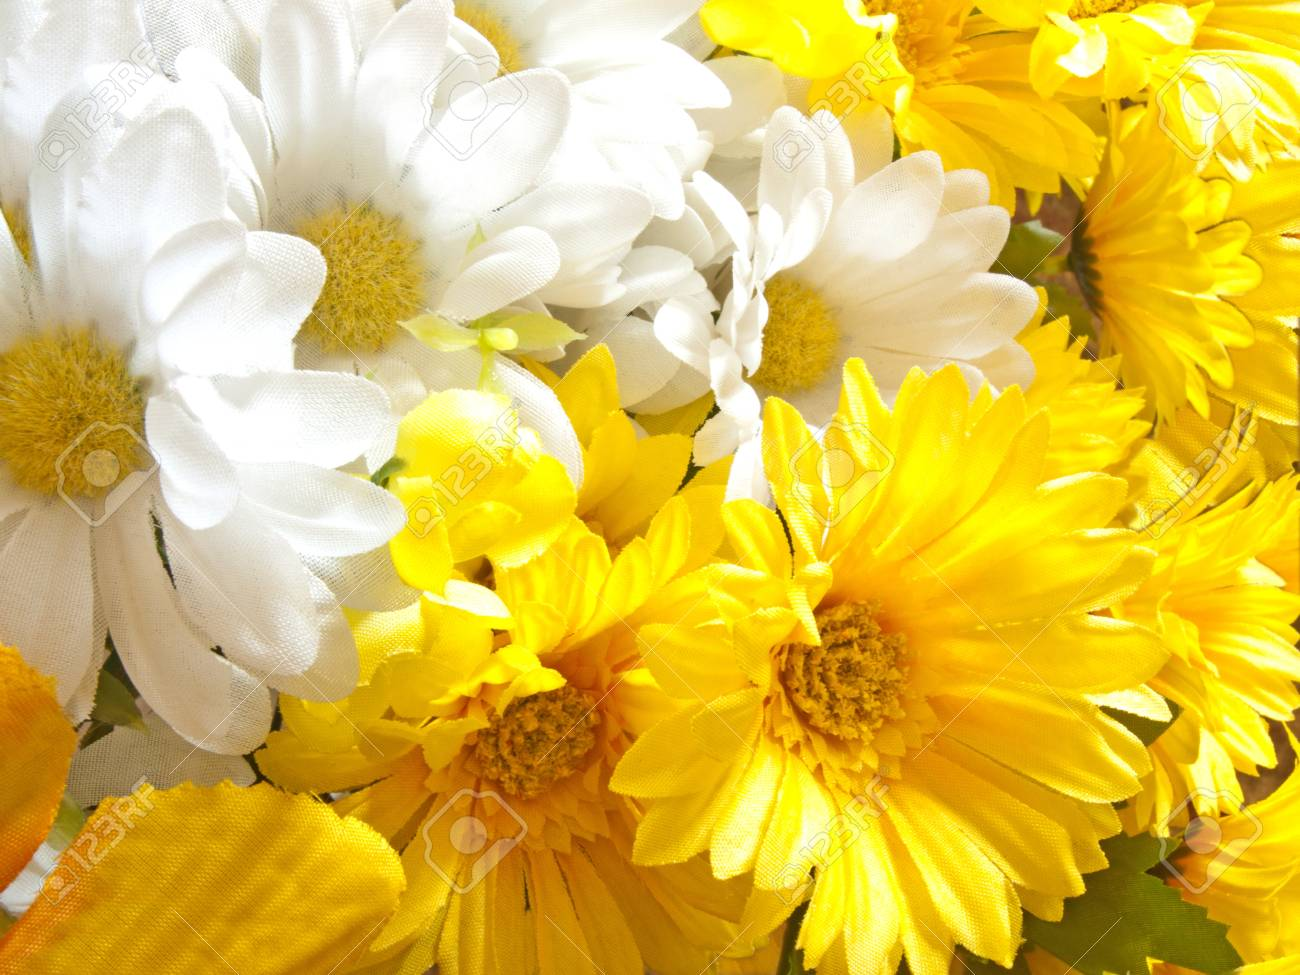 White and yellow artificial flowers stock photo picture and royalty stock photo white and yellow artificial flowers mightylinksfo